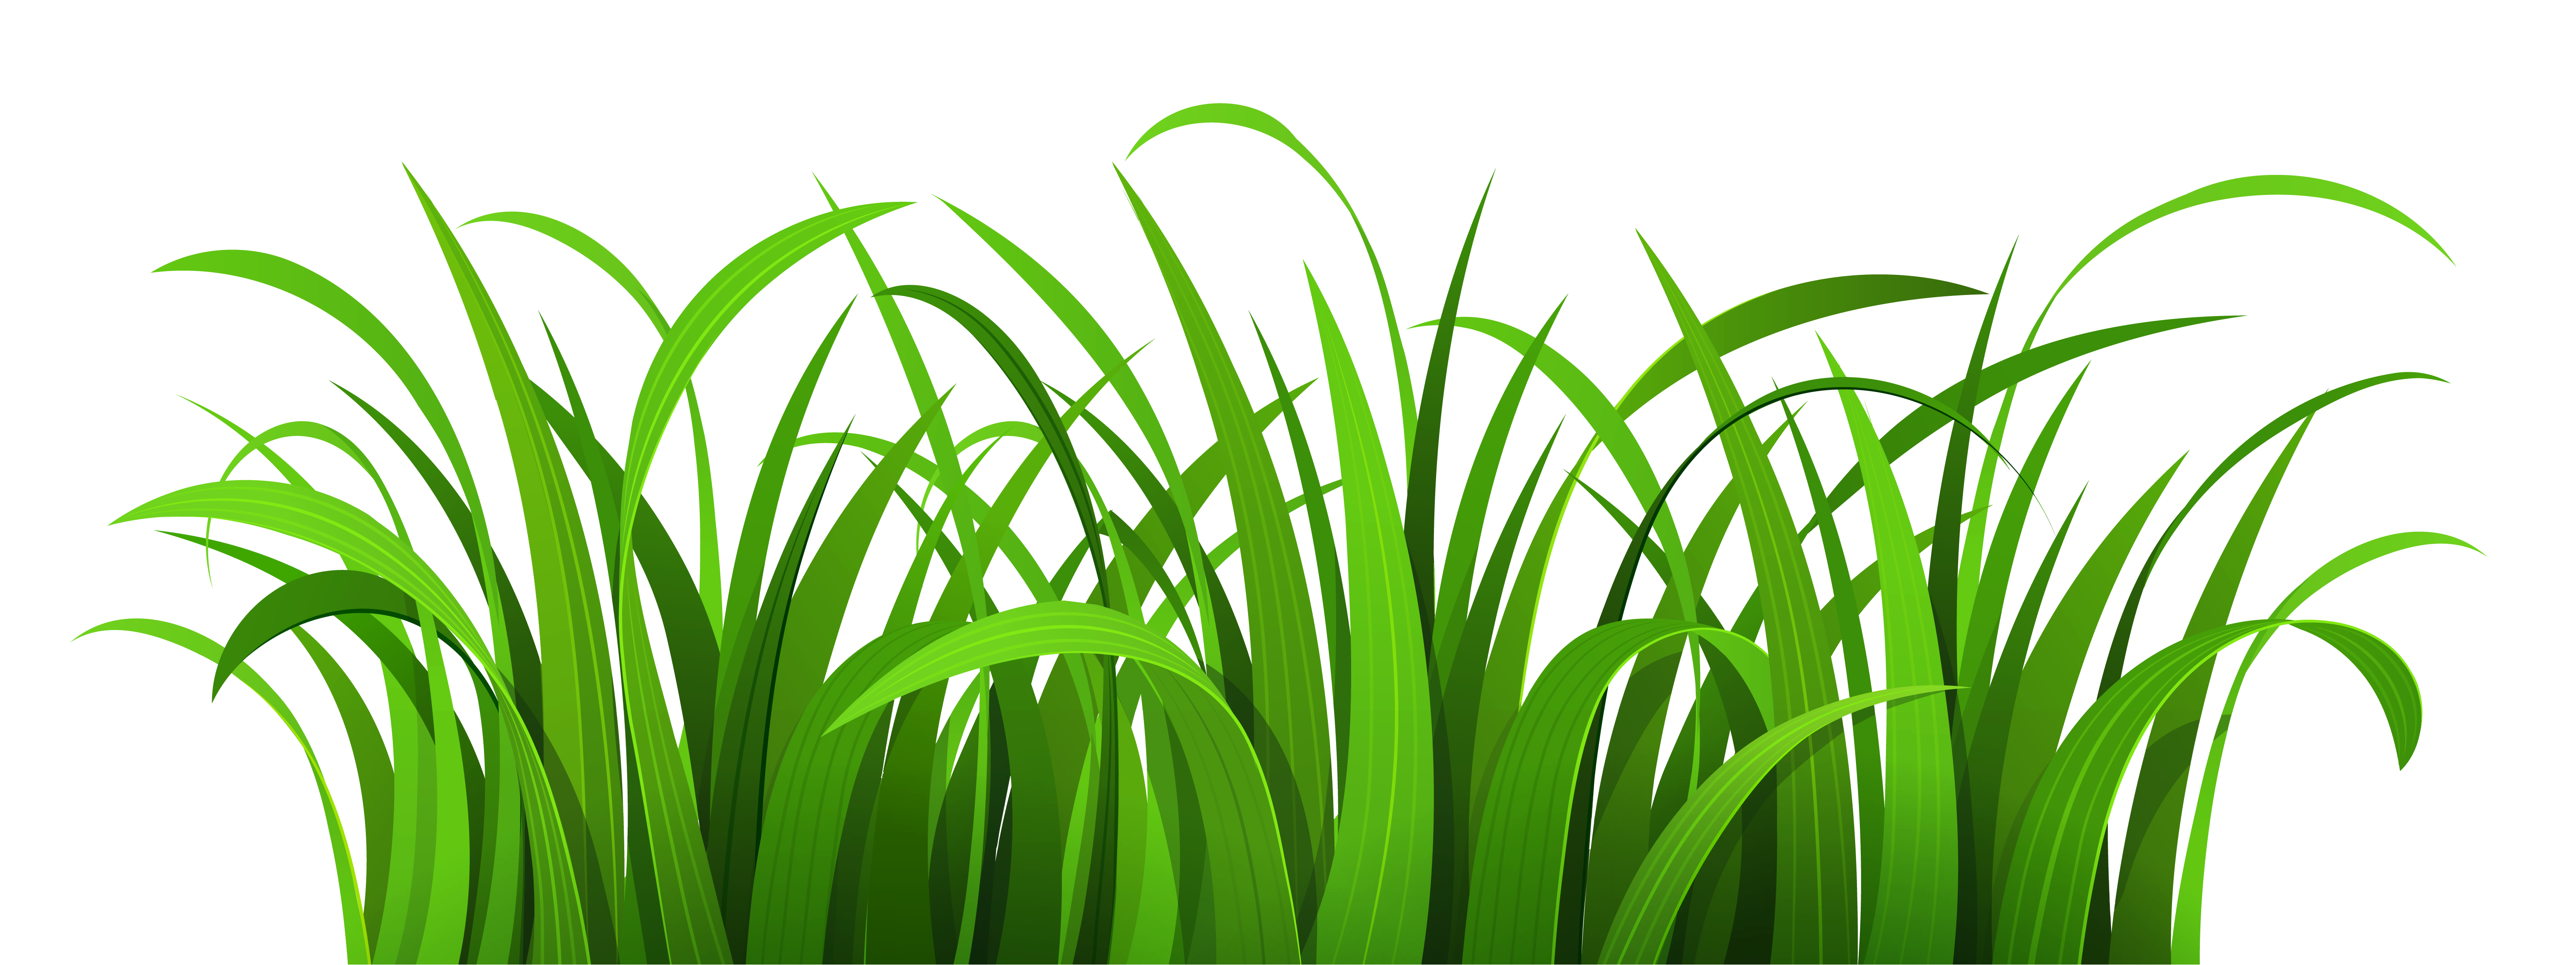 Grass clipart png. Patch gallery yopriceville high